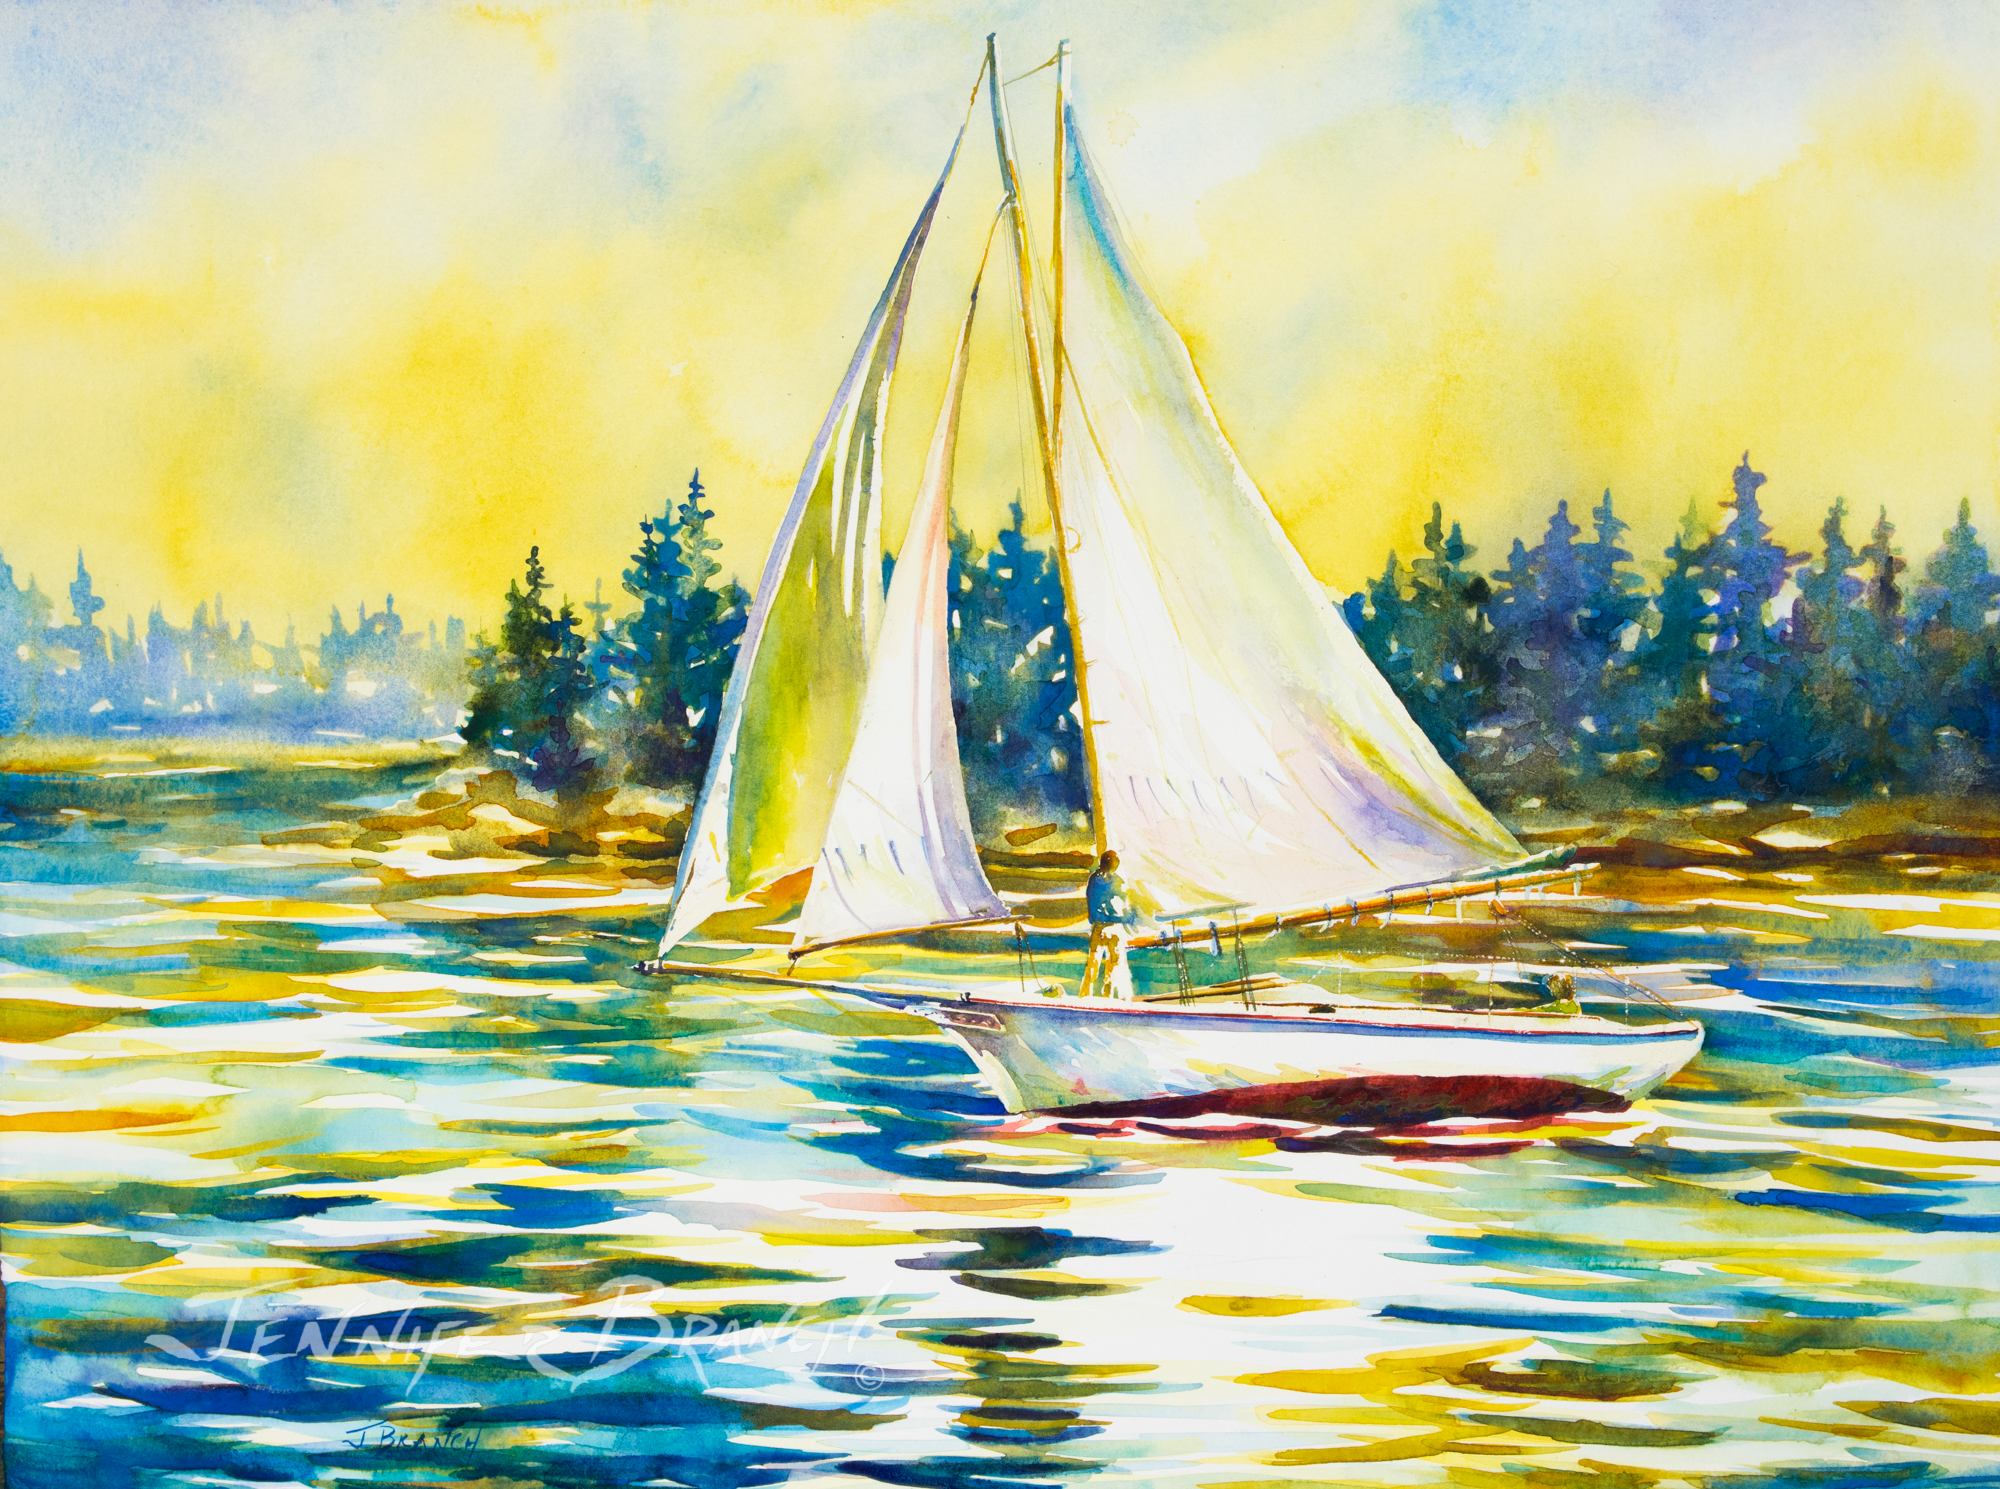 Frienship sloop watercolor painting by Jennifer Branch.